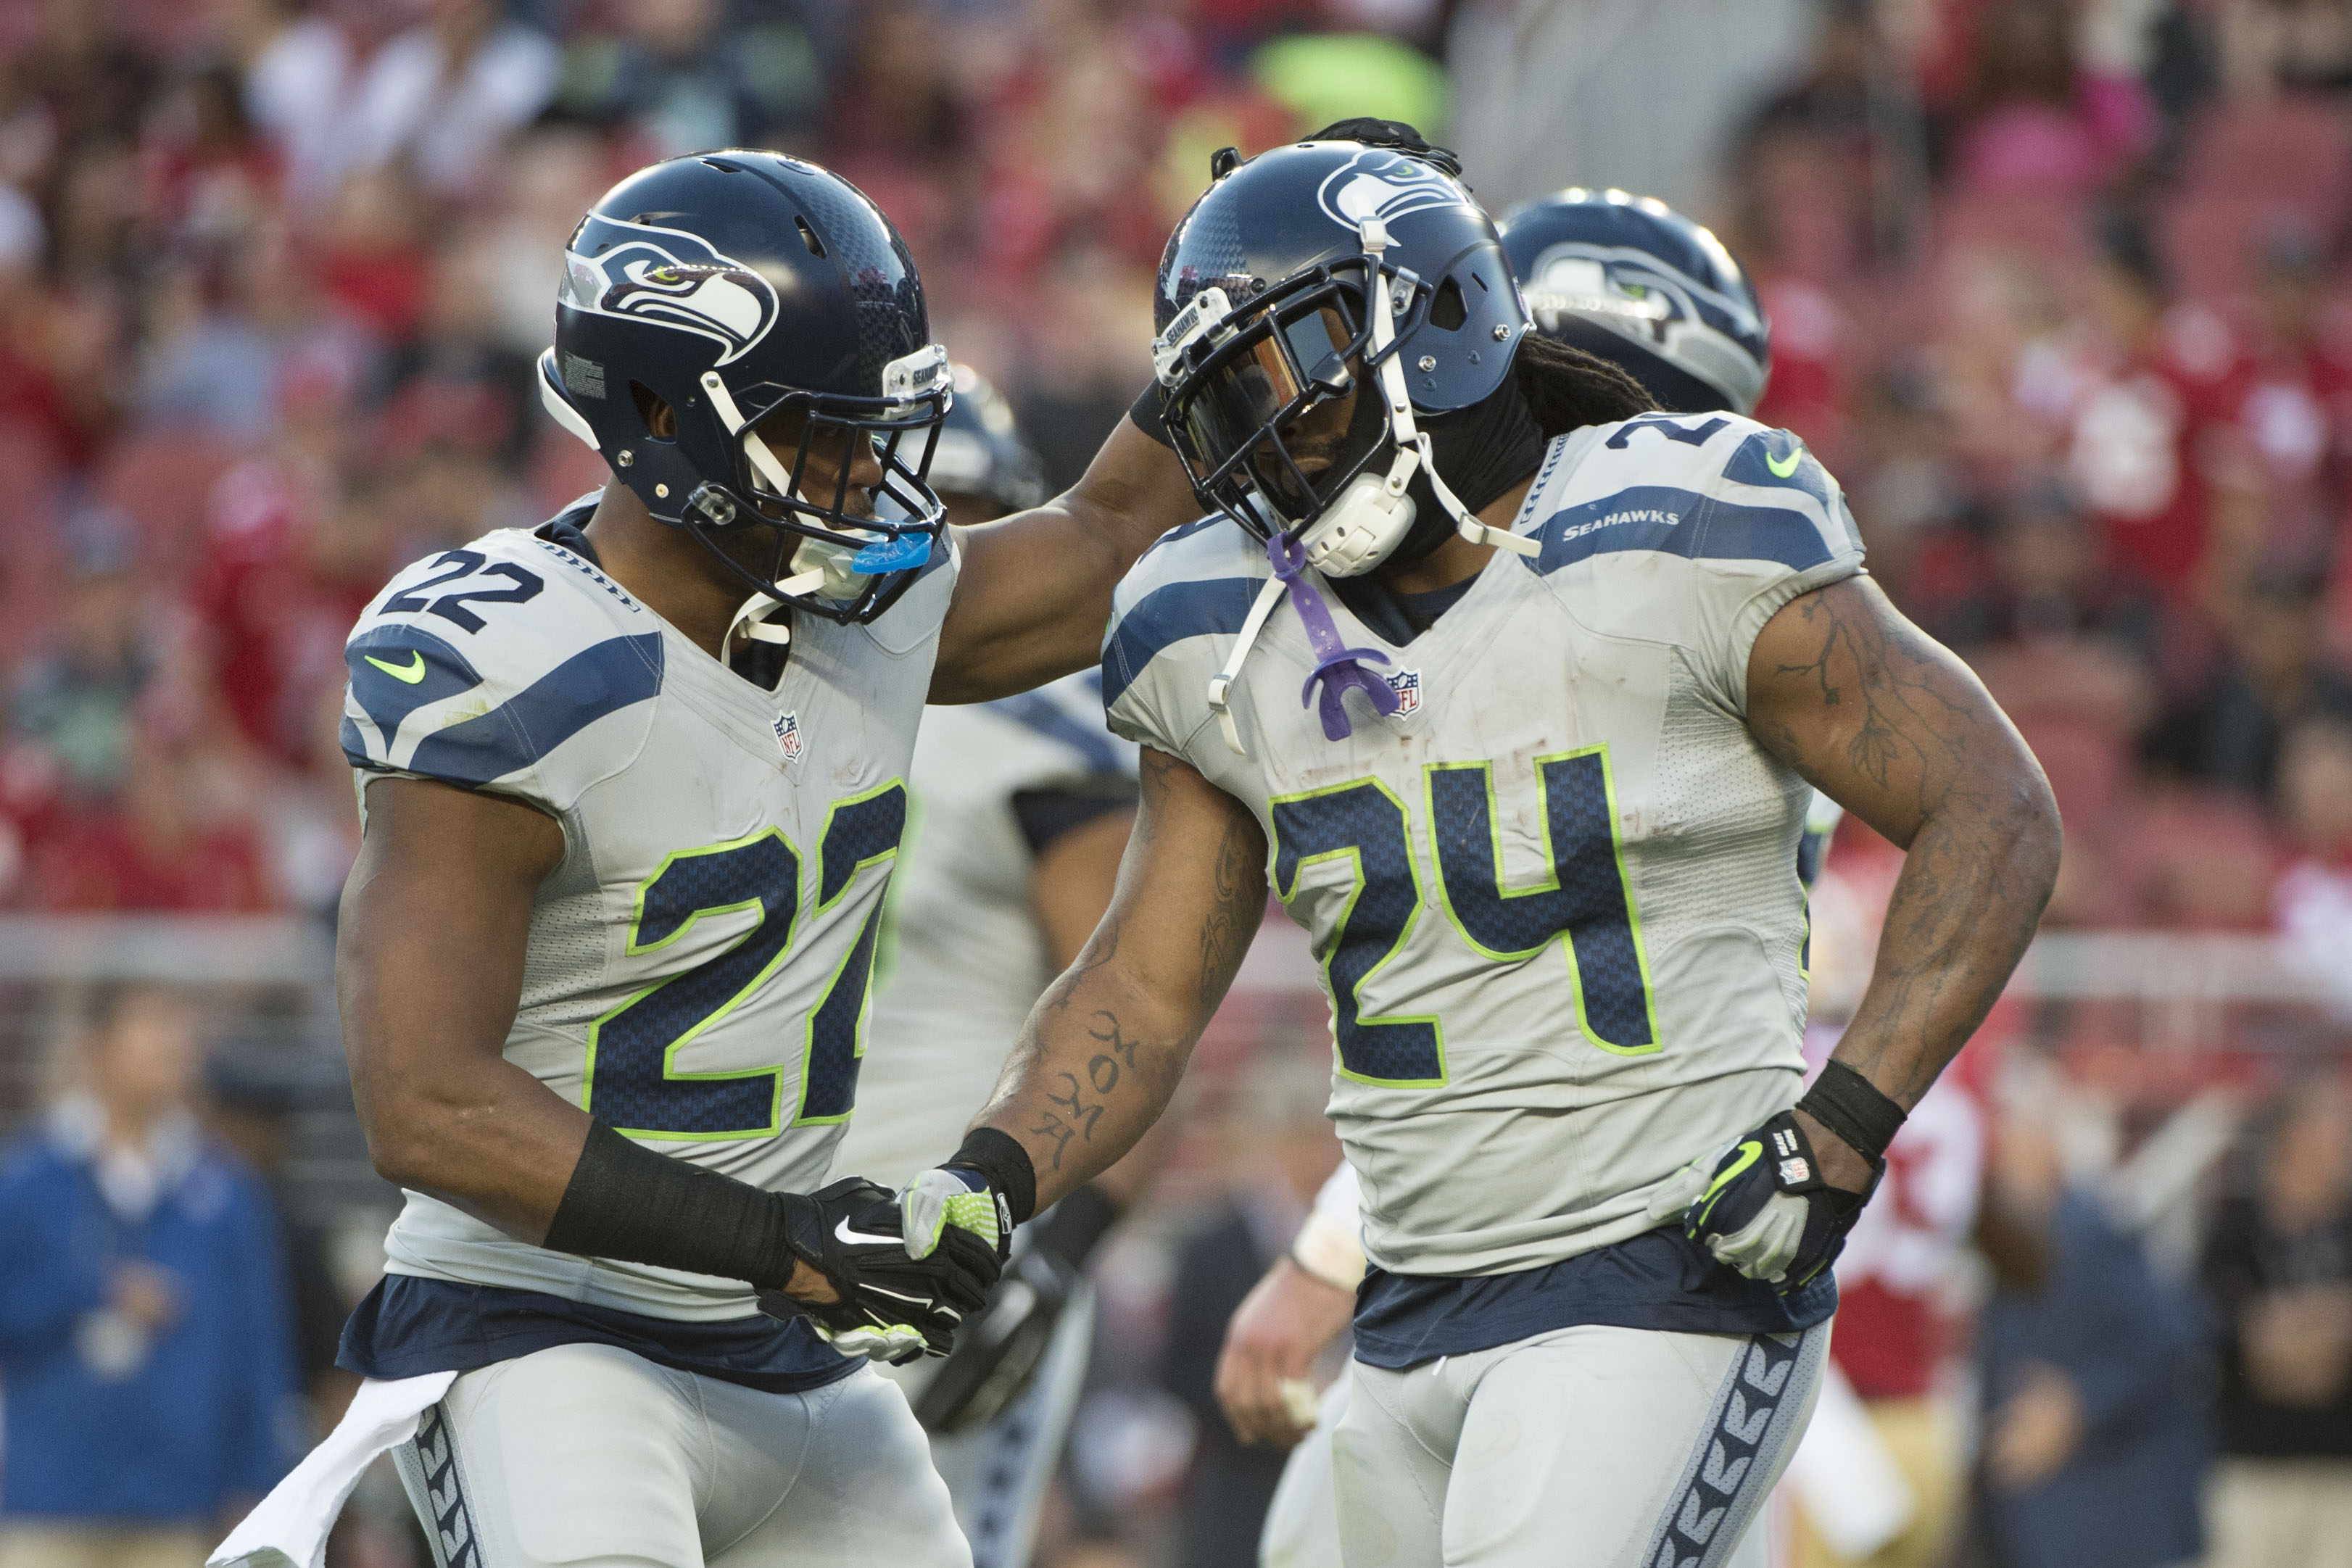 8877631-nfl-seattle-seahawks-at-san-francisco-49ers